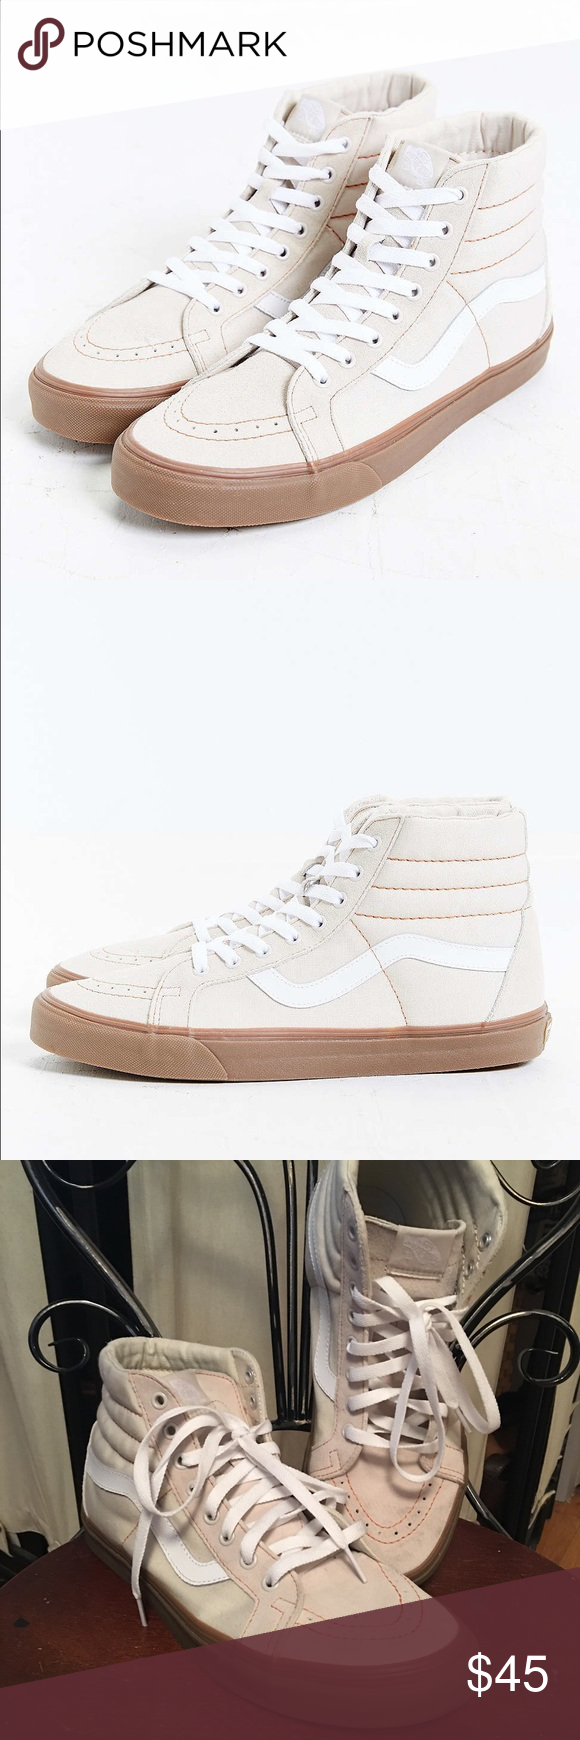 1e8c118cbb Men sz 10 cream van skate hi Men vans sk8 hi beige color gum sole with red  stitching in great condition worn twice Vans Shoes